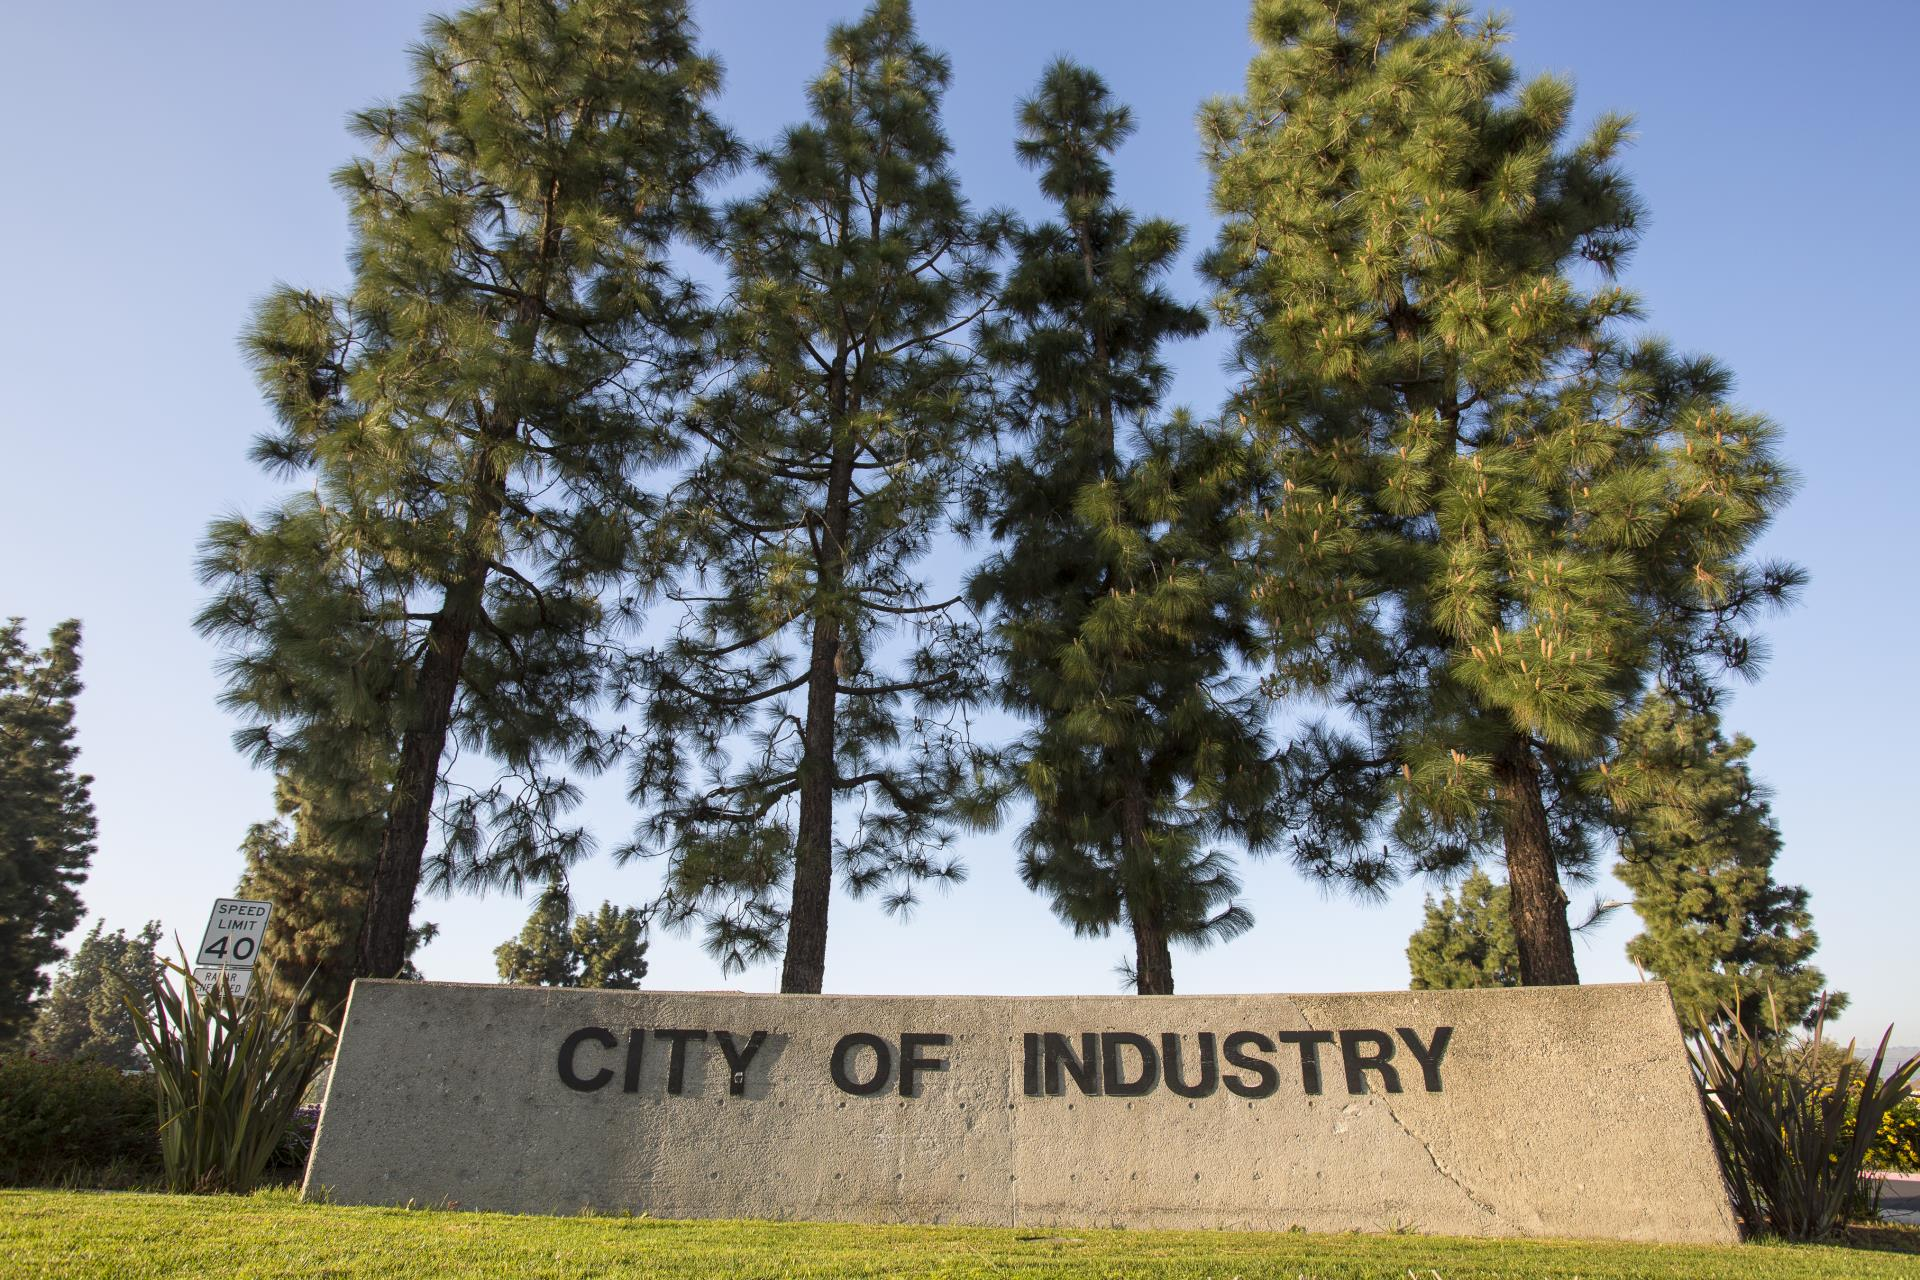 City of Industry Name